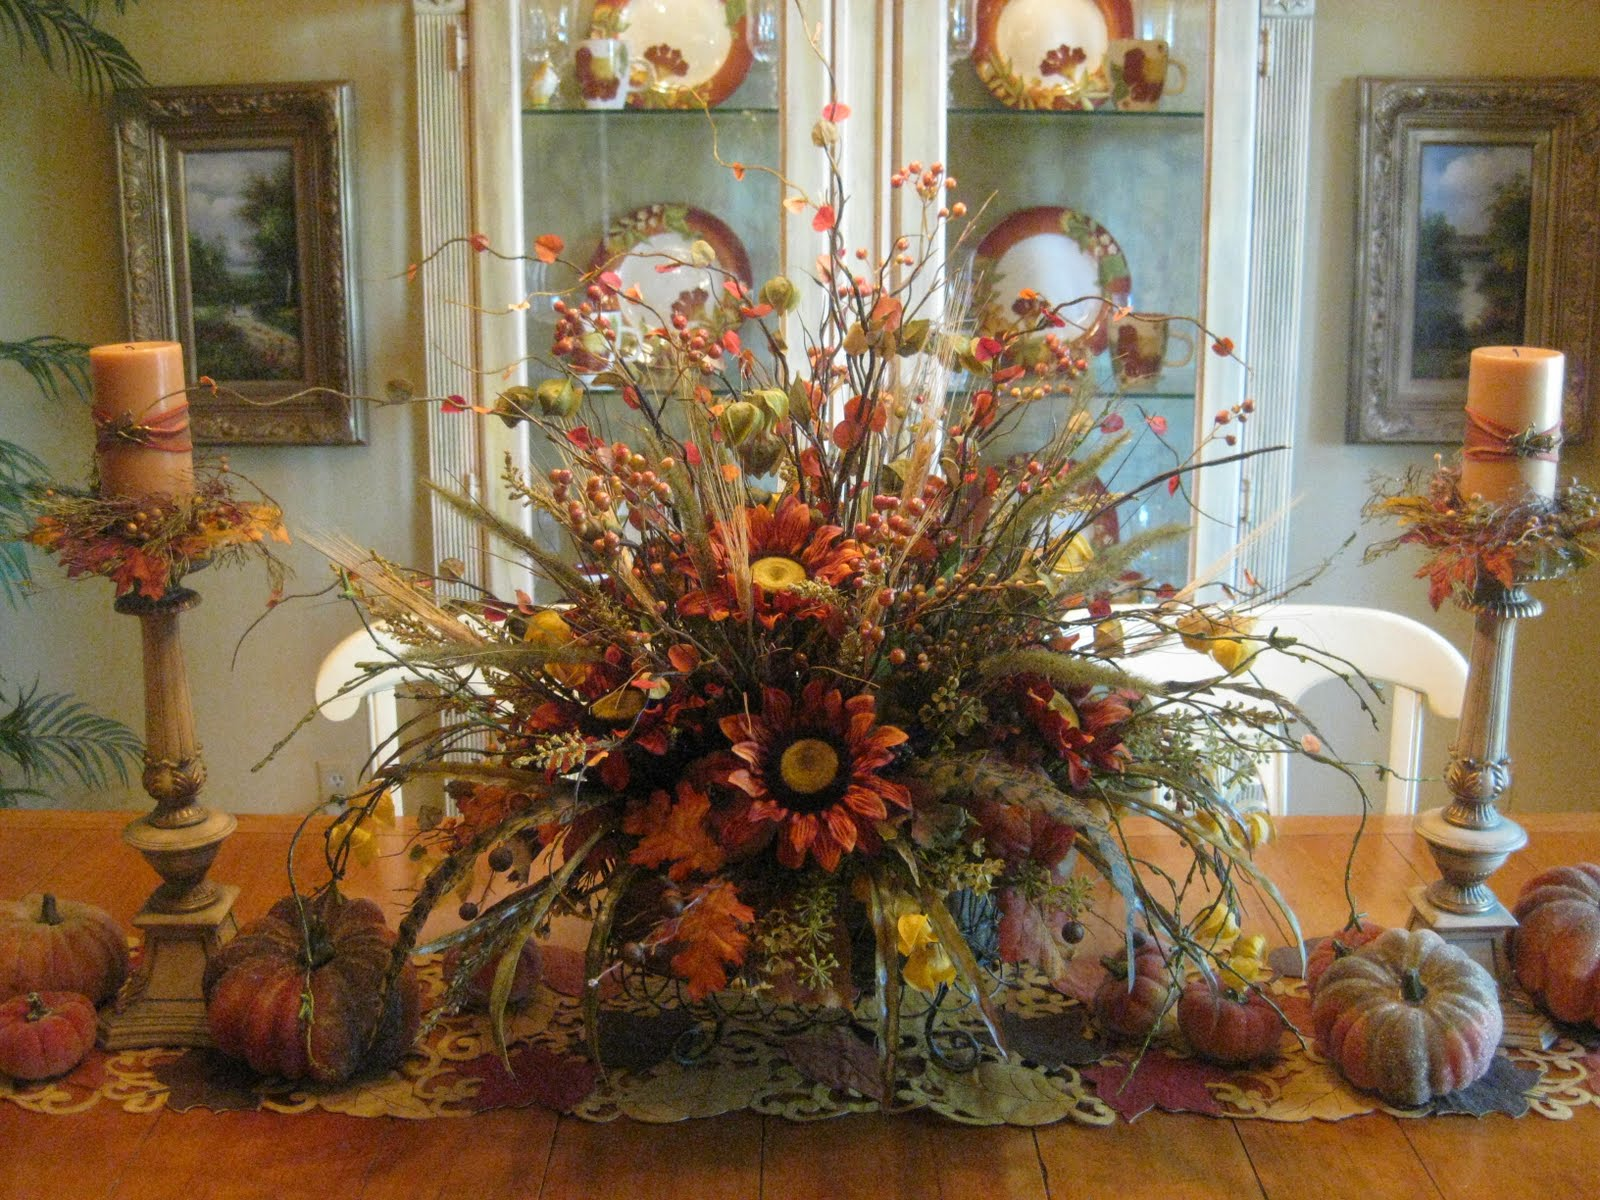 1000 images about fall decorations on pinterest fall for Fall table